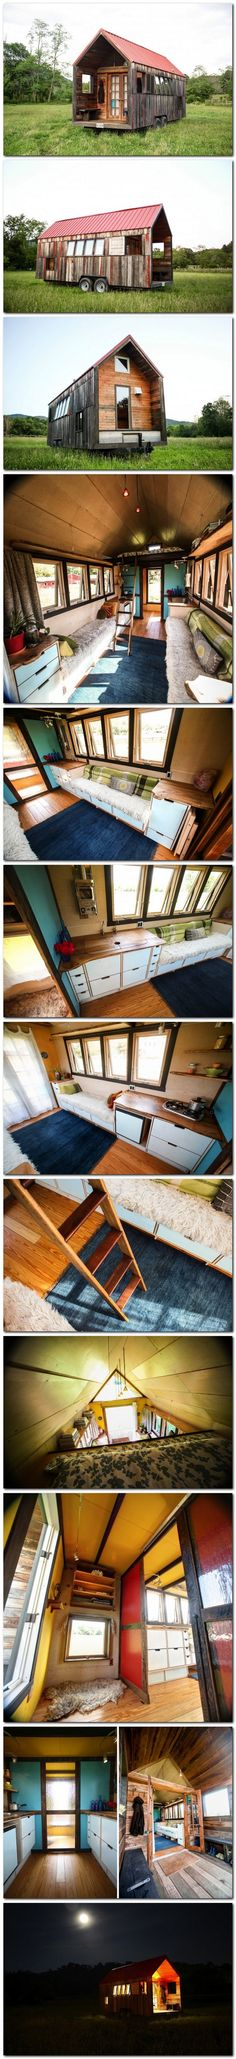 200 Square Foot Pocket Shelter Mobile House by Aaron Maret #vintage